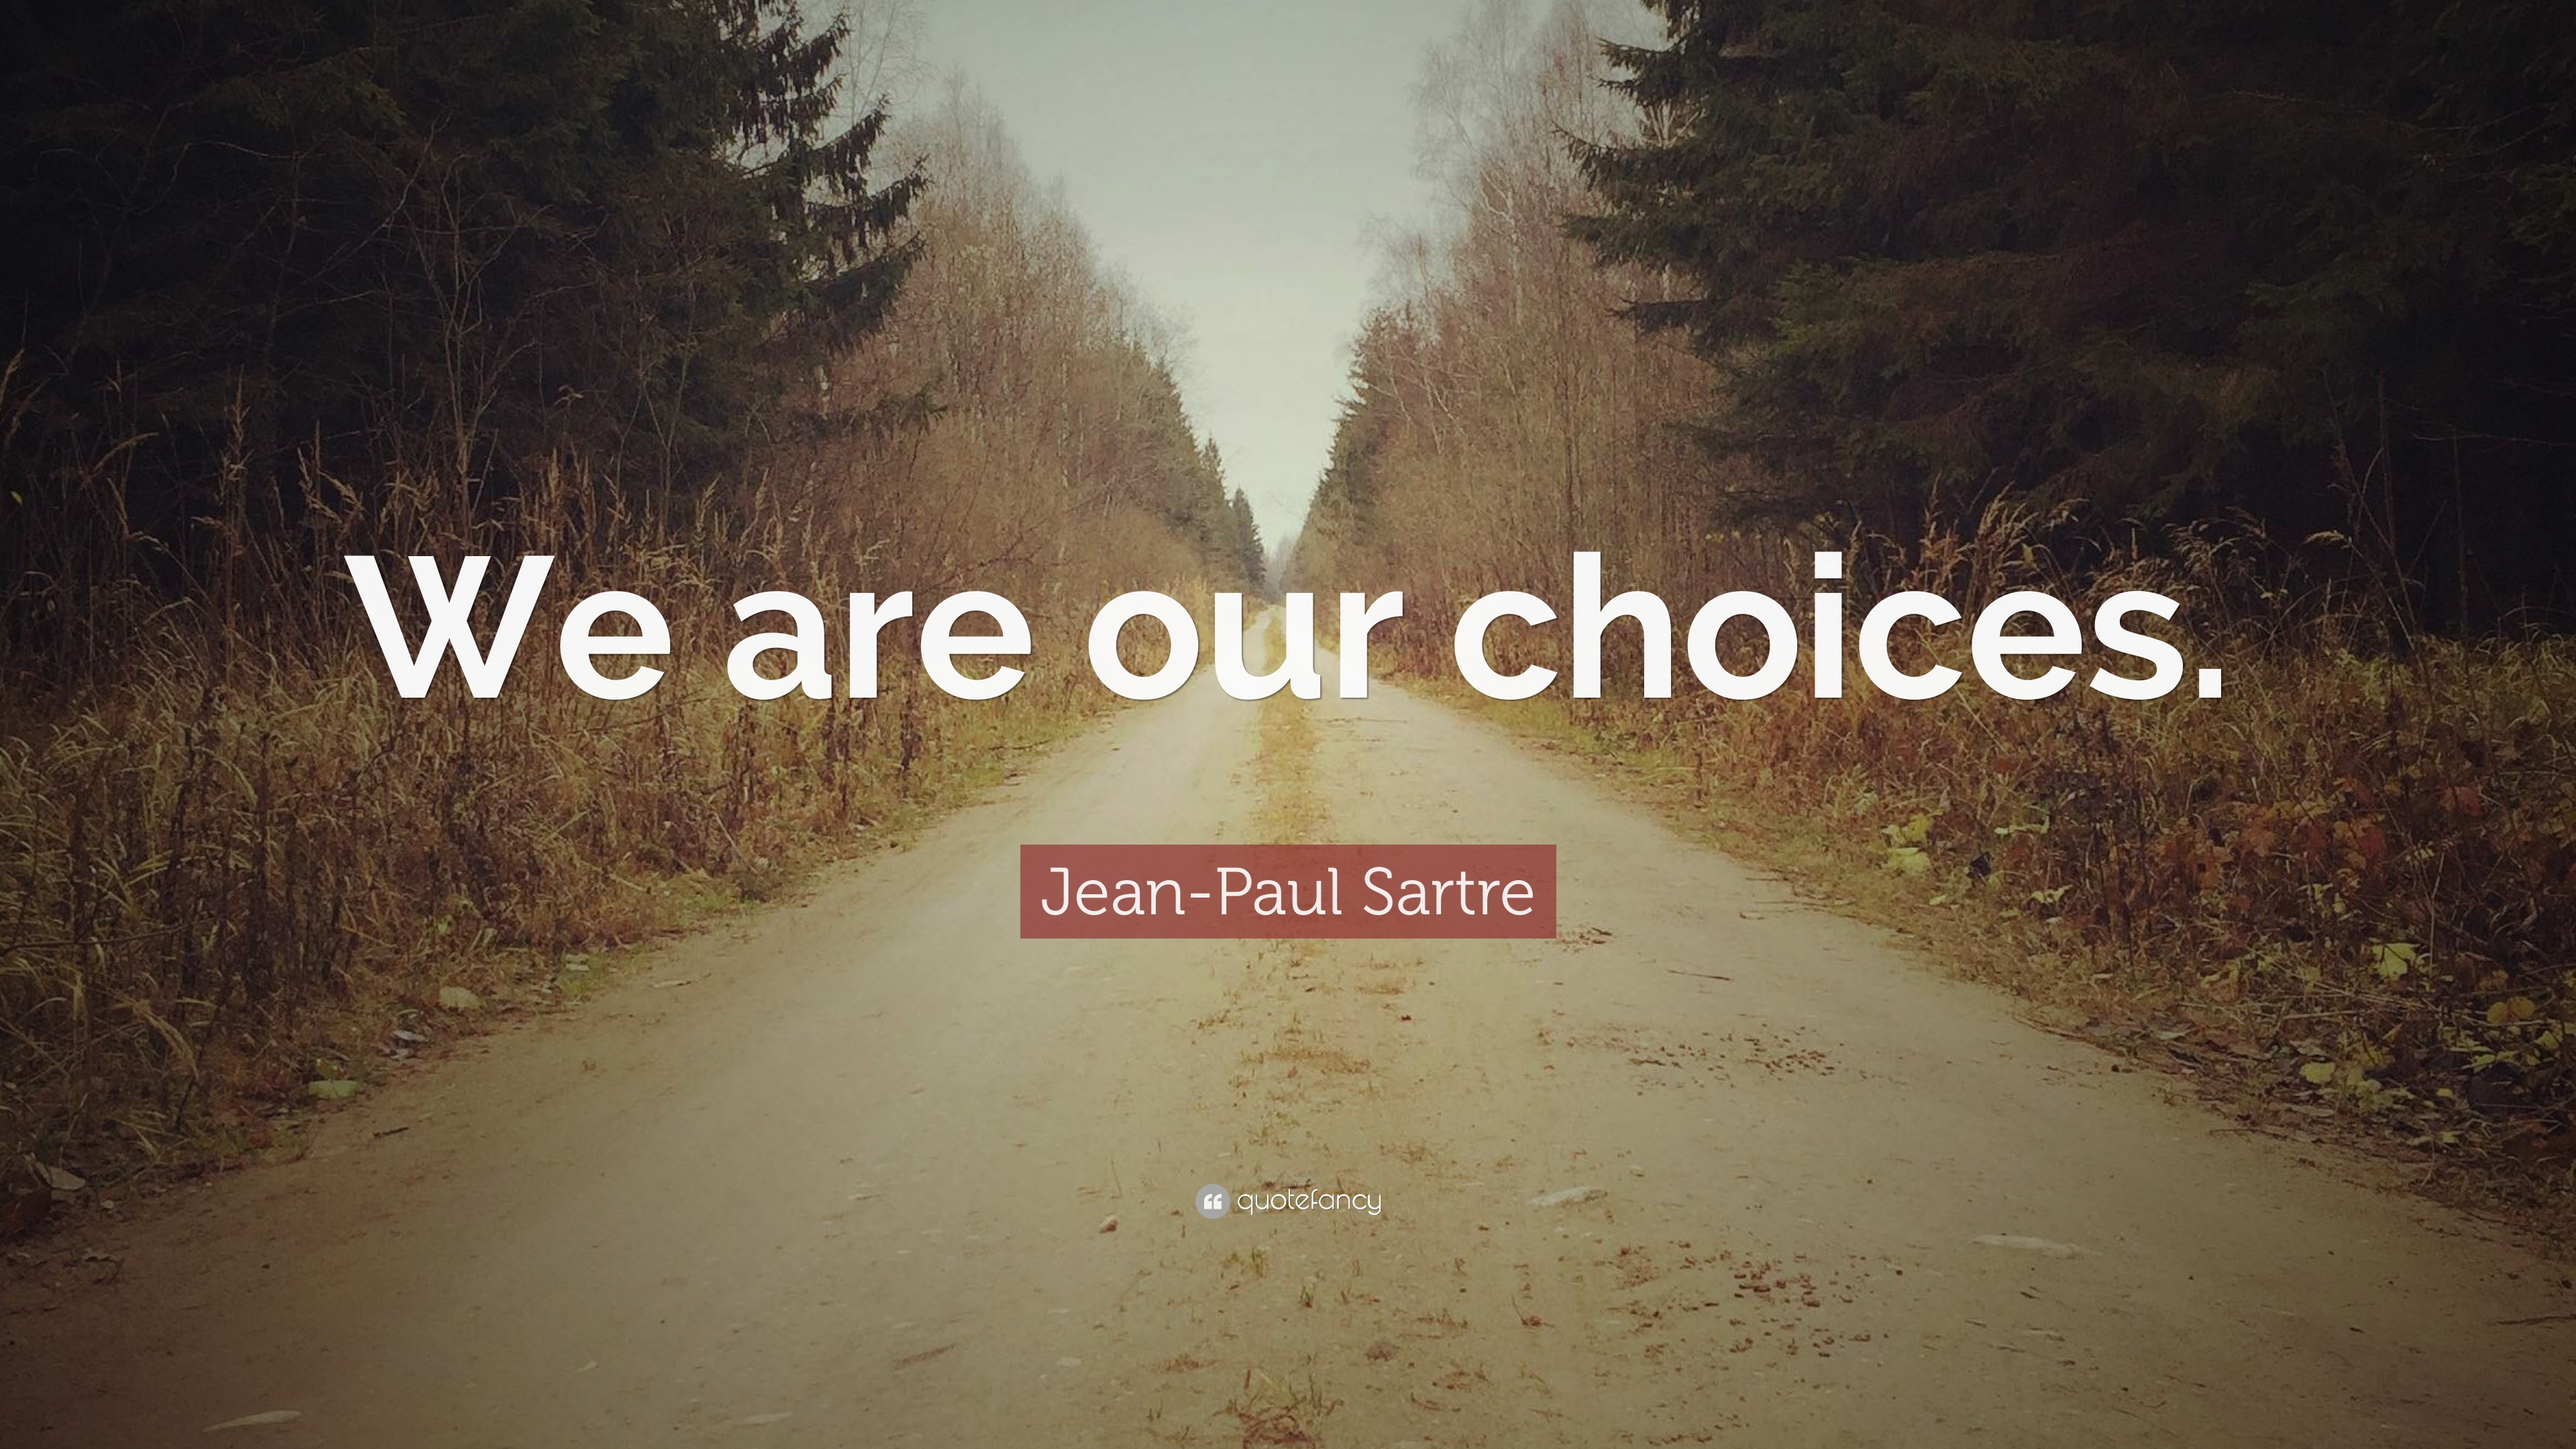 sartre on life choices philosophy essay Essays sartre on freedom  sartre on freedom  for his own being and for his own life (sartre, 2007) such exercise of freedom resulted in the feeling of.